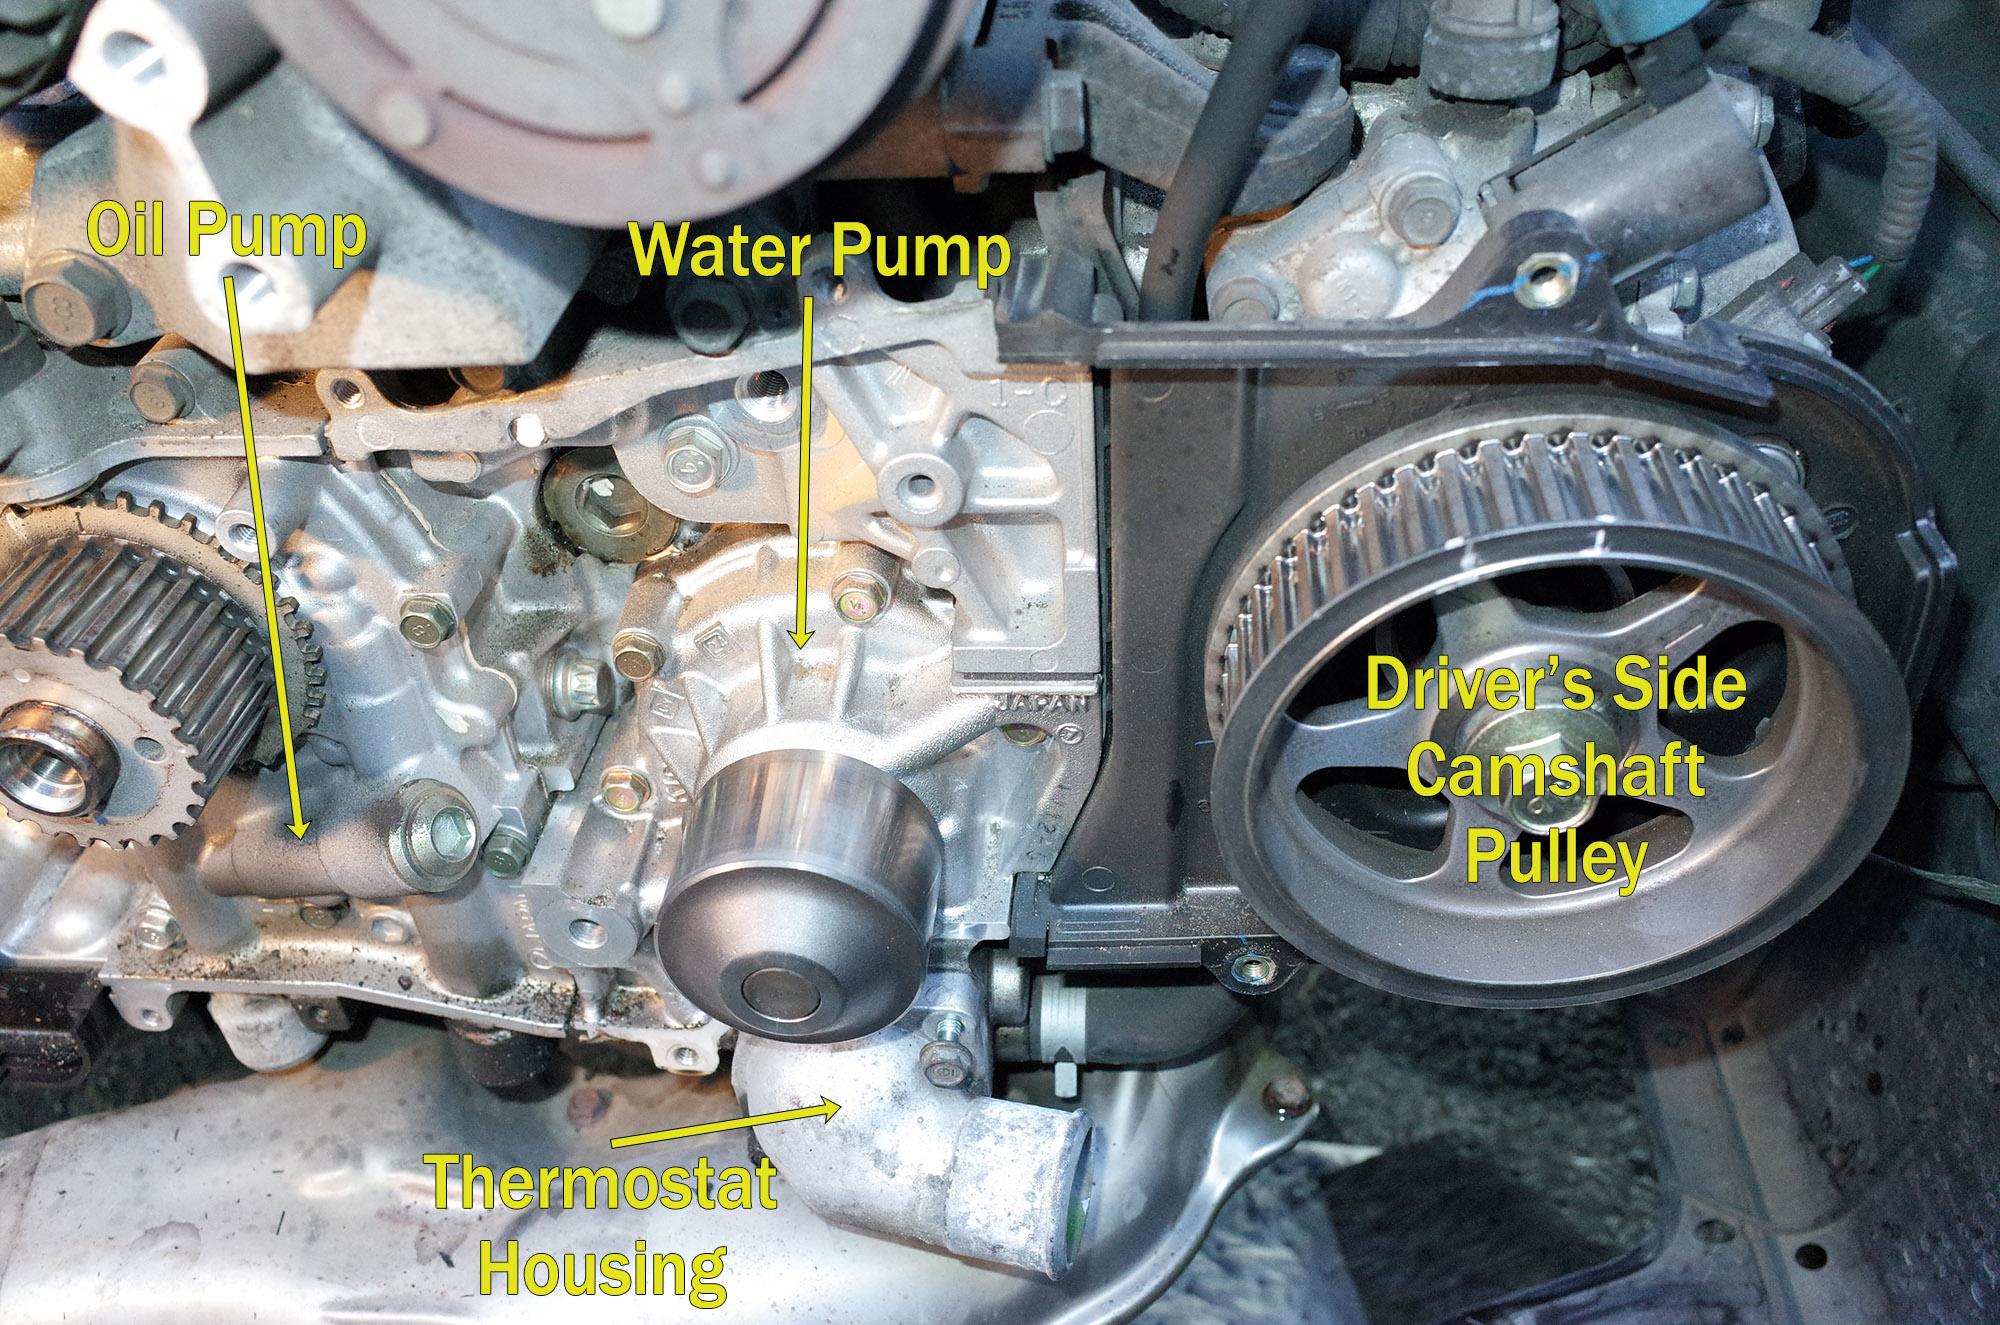 Oil For Subaru Outback >> Timing belt, oil pump, water pump photos - Subaru Outback - Subaru Outback Forums